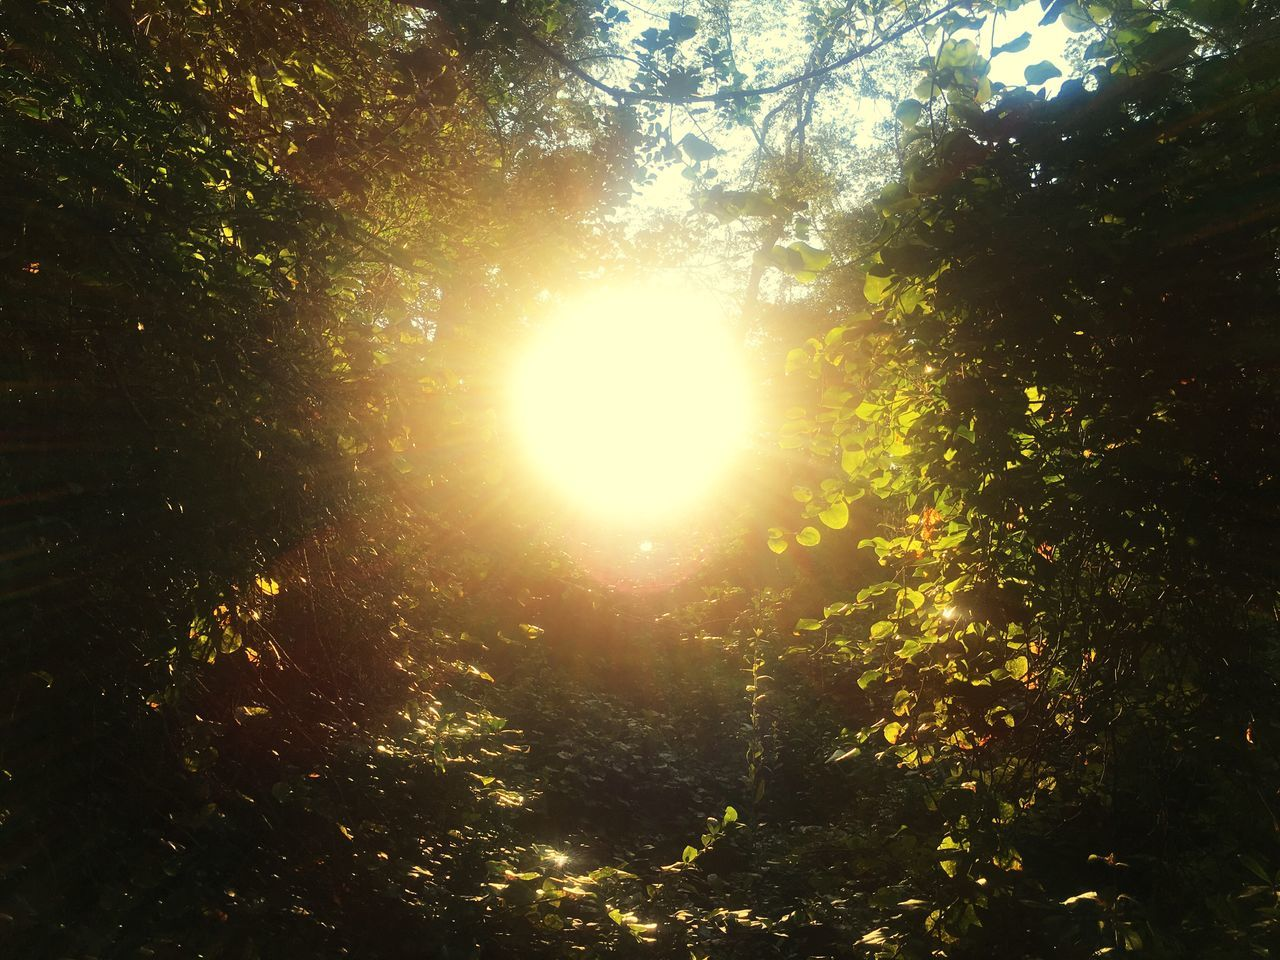 sun, tree, nature, beauty in nature, sunbeam, forest, sunlight, lens flare, growth, scenics, outdoors, tranquil scene, no people, low angle view, tranquility, branch, day, sky